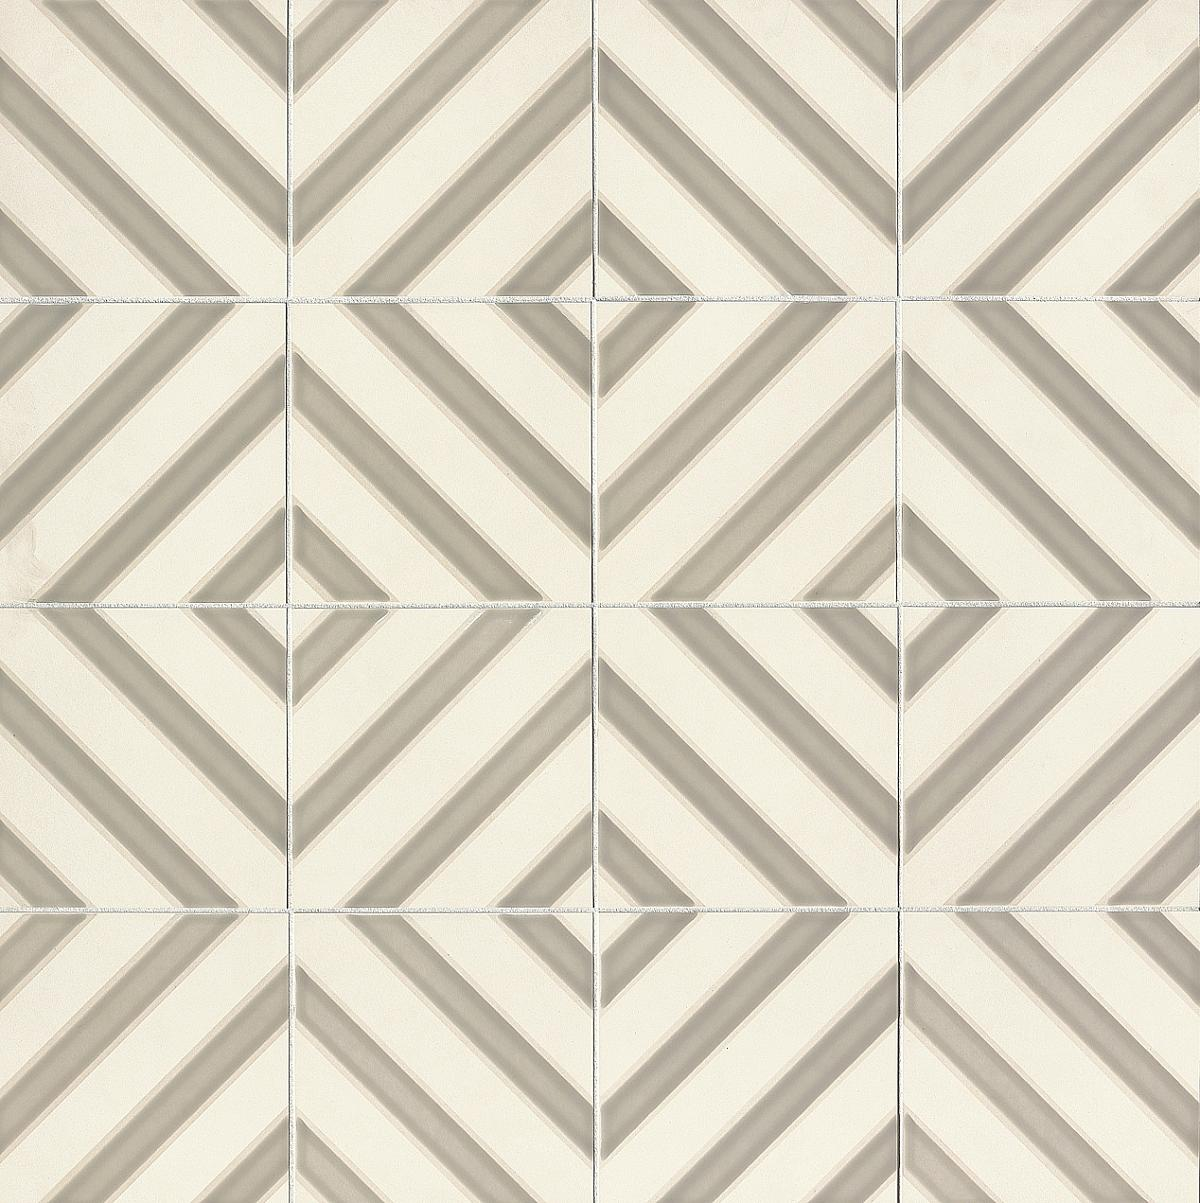 Taupe and grey diamond pattern cement tile.